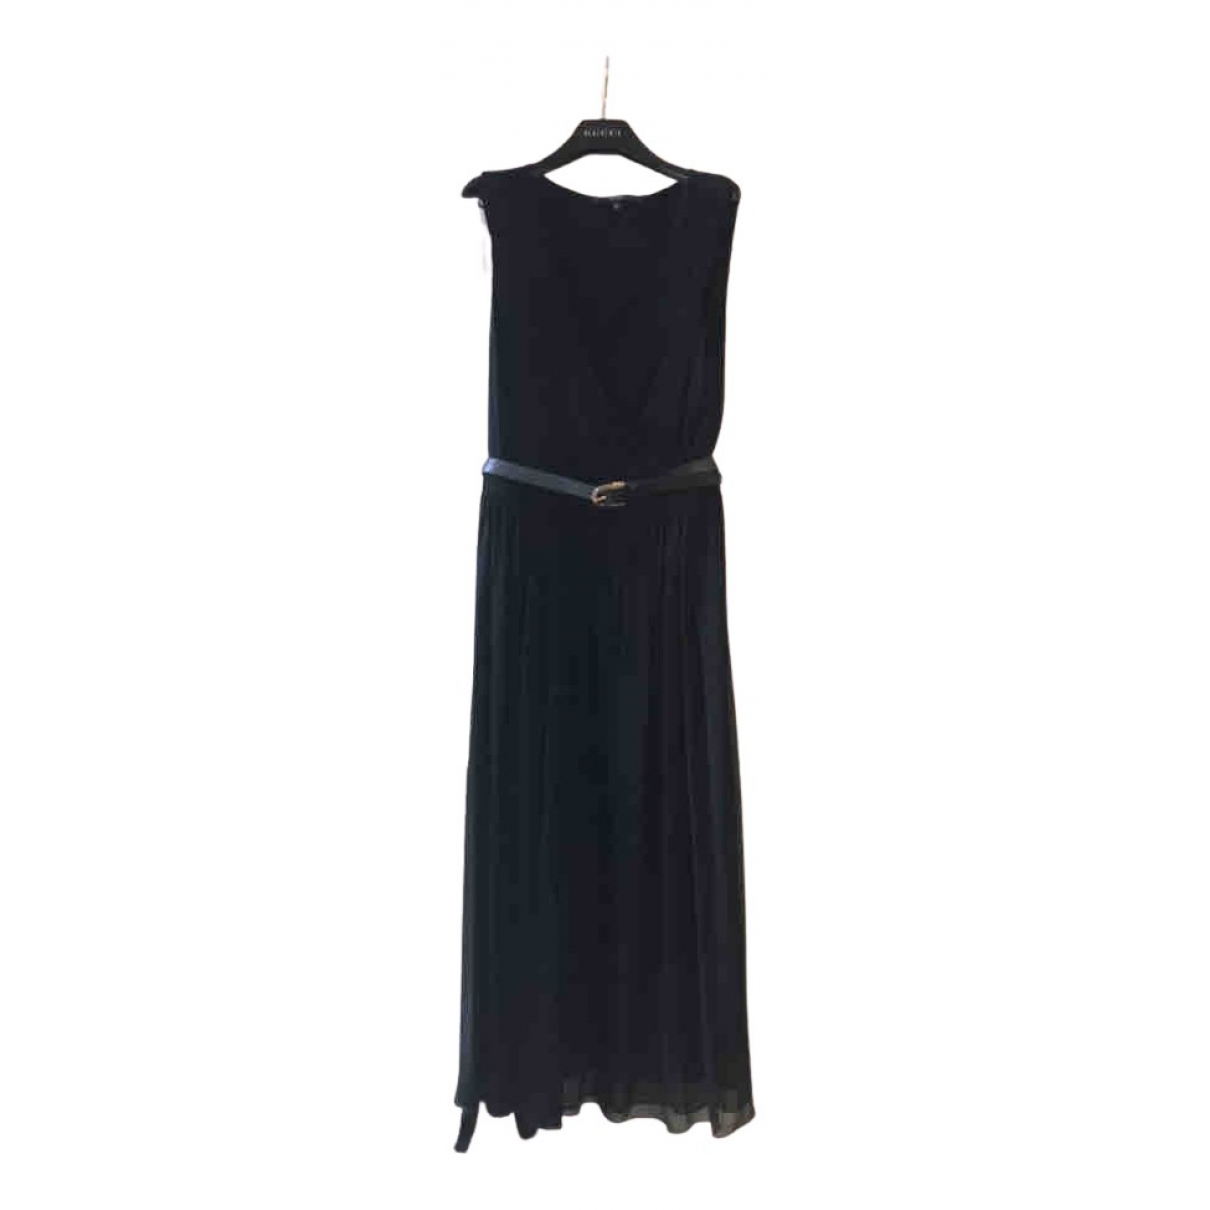 Gucci N Black dress for Women M International